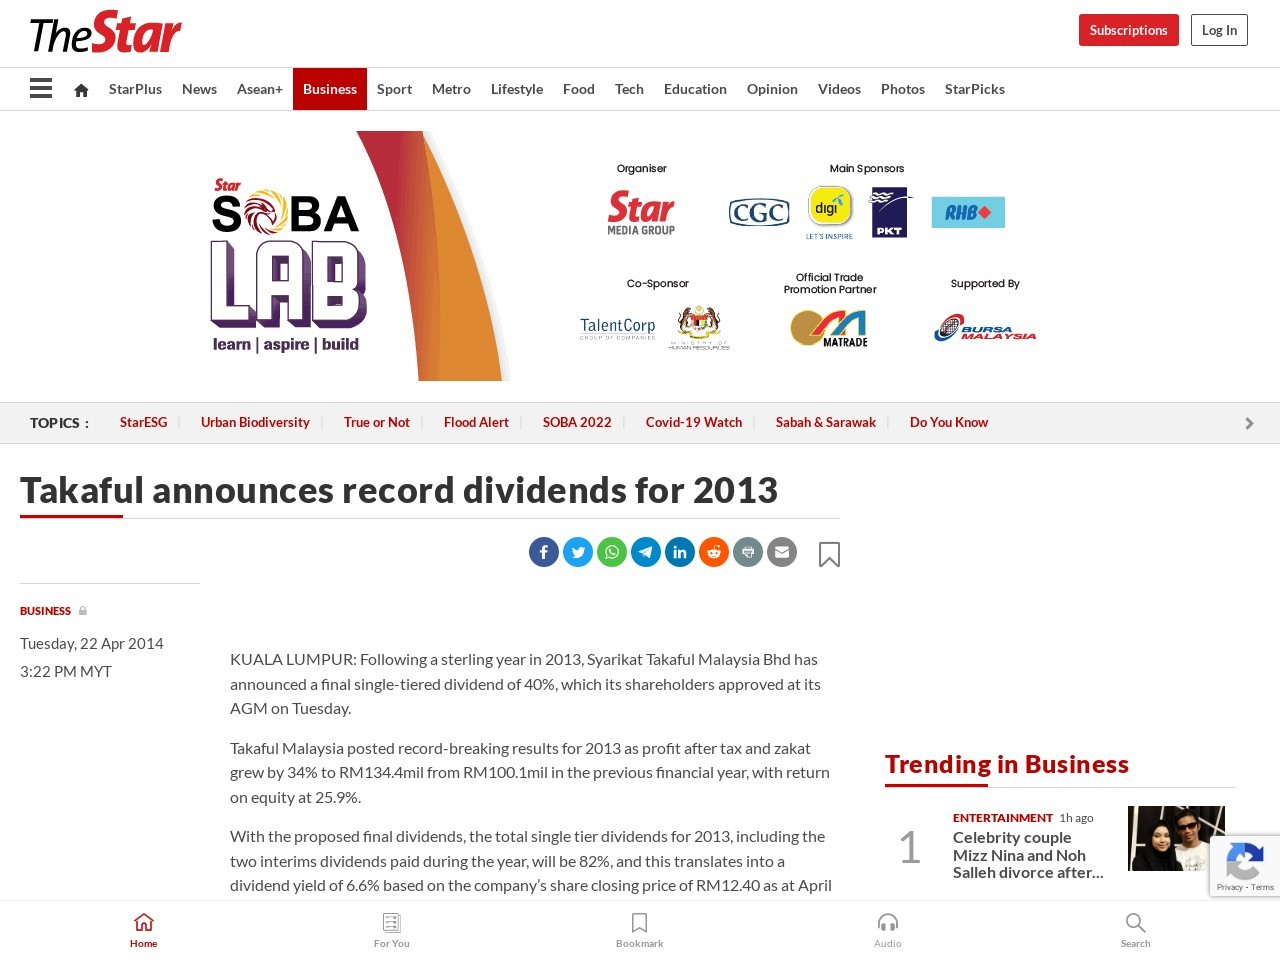 Takaful announces record dividends for 2013